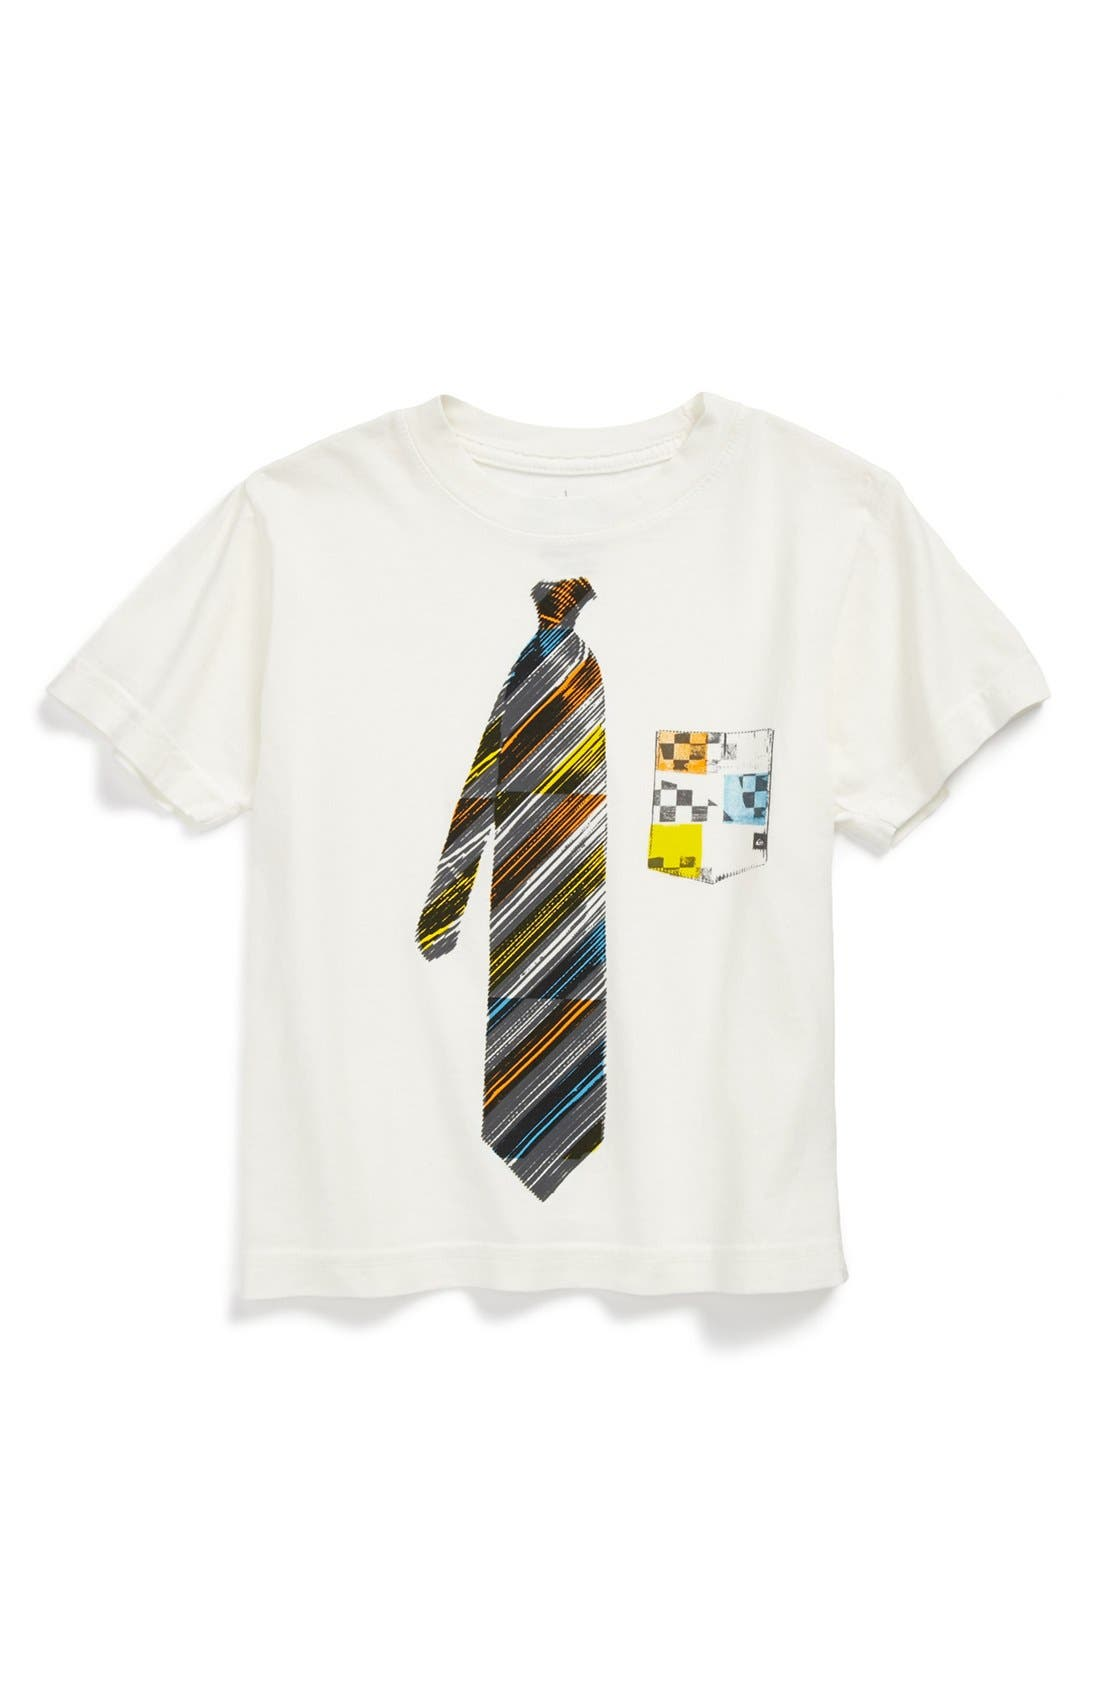 Main Image - Quiksilver 'Stylin' T-Shirt (Toddler Boys)